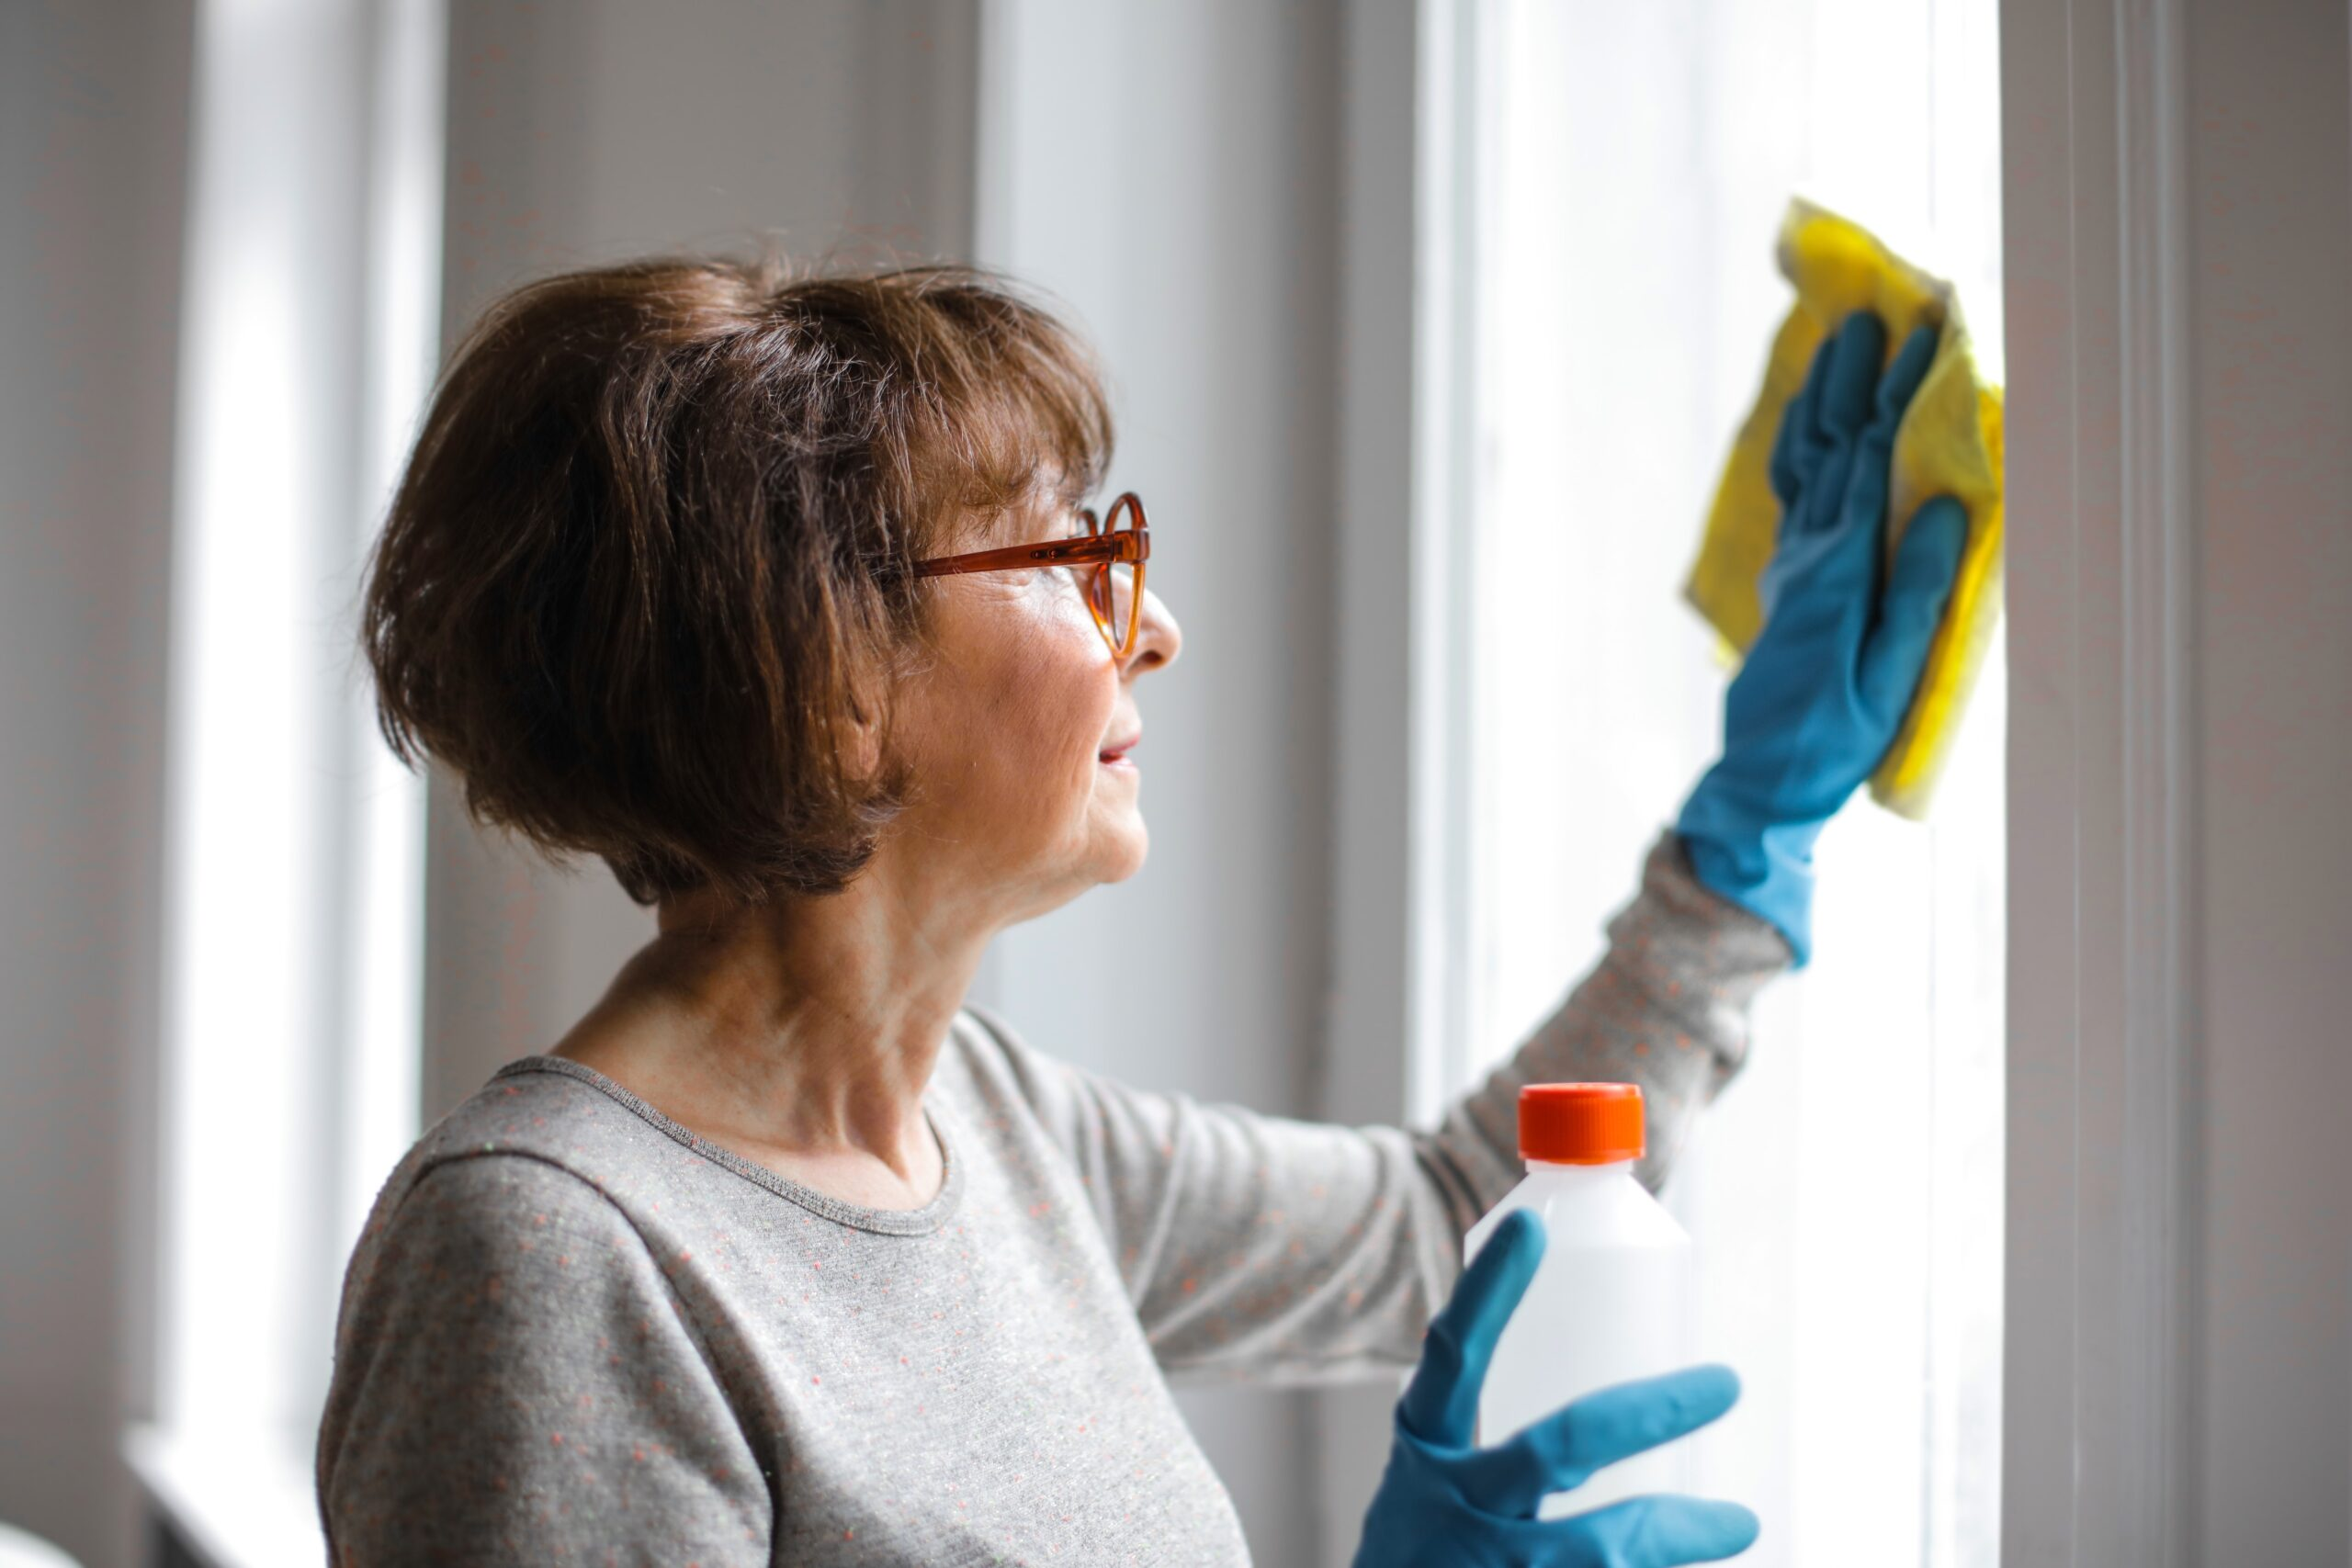 You are currently viewing Non-Toxic and Natural Cleaning Products for Your Home